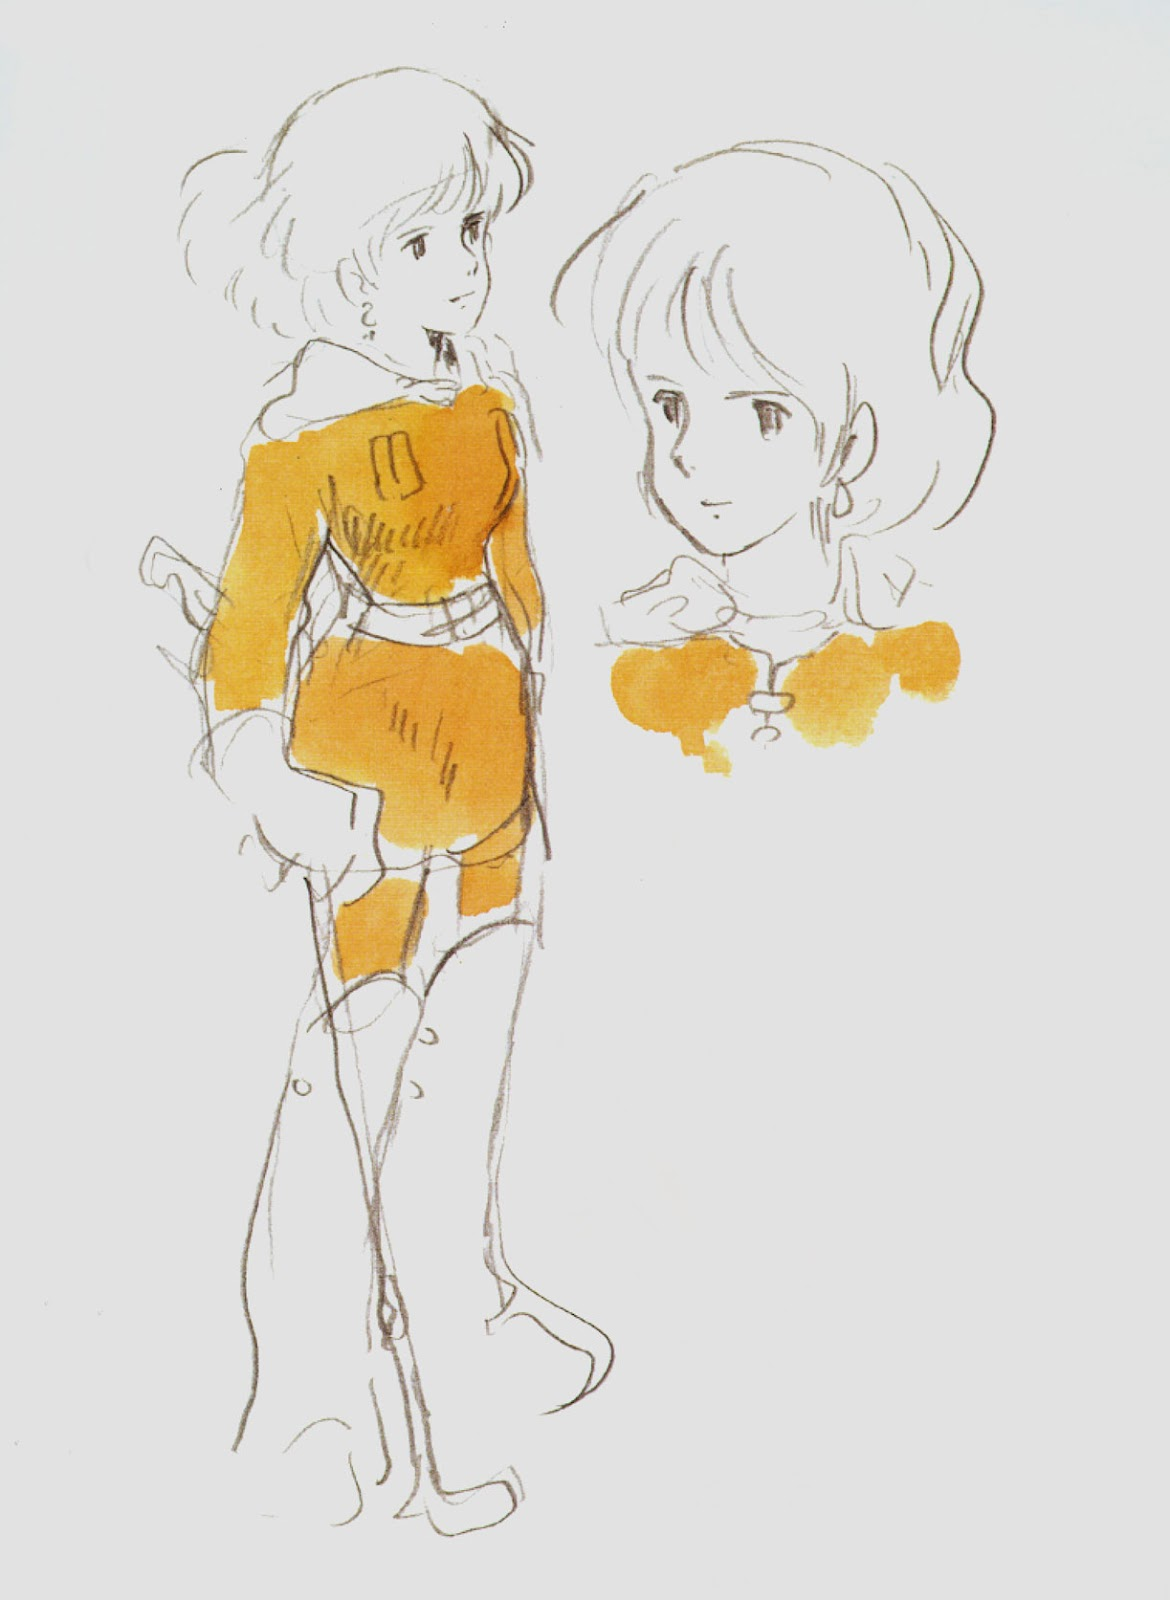 nausicaa_of_the_valley_of_the_wind_concept_art_character_00c.jpg